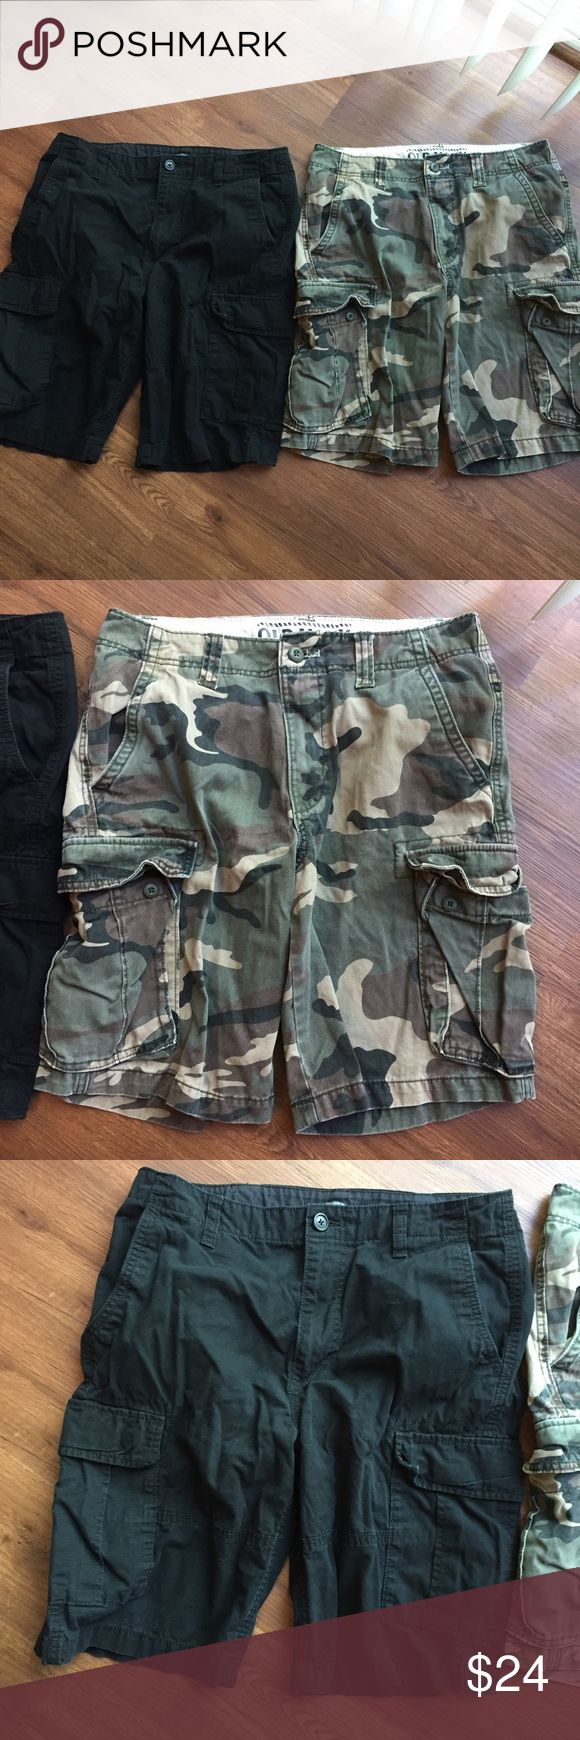 Men's Shorts! Size 31 • Old Navy • This is a bundle of two pair of Cargo Shorts. A black pair and a camouflage pair. Old Navy, Excellent Condition, Smoke Free Home, and Fast Shipping! Enjoy 25% if you bundle another listing with this one. Old Navy Shorts Cargo